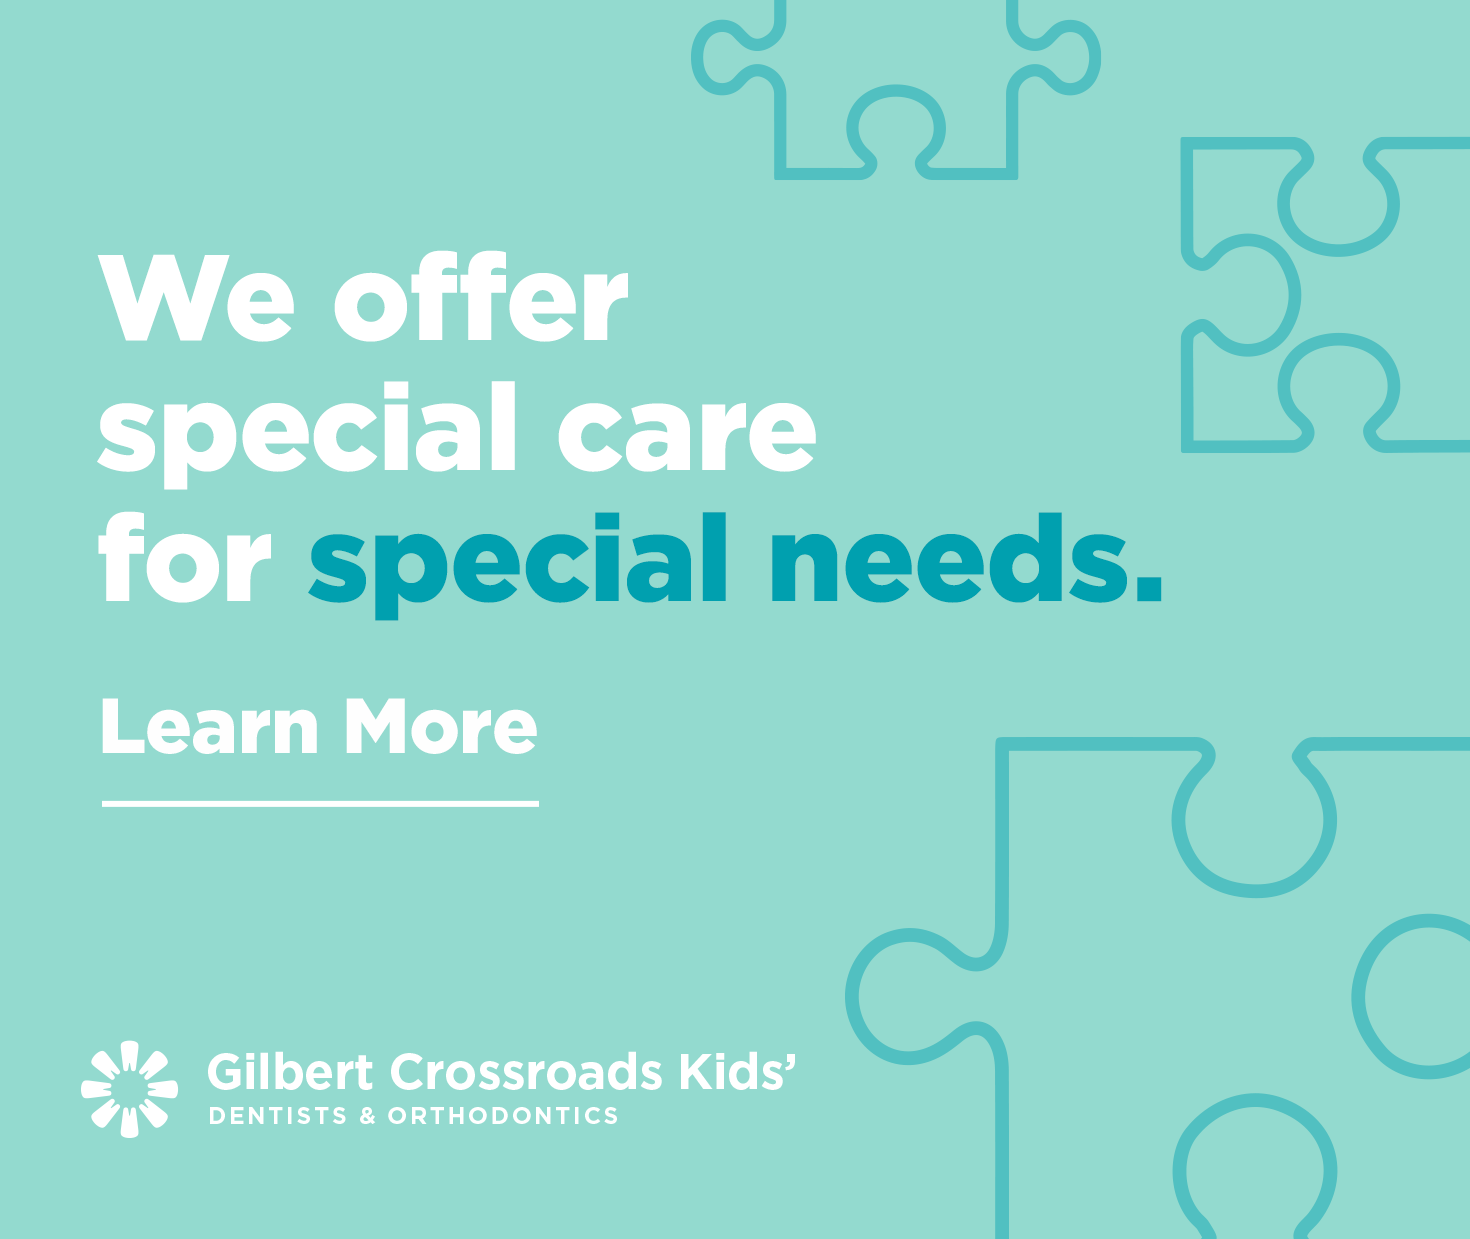 We offer special care for special needs. Learn More.  - Gilbert Crossroads Kids' Dentists & Orthodontics